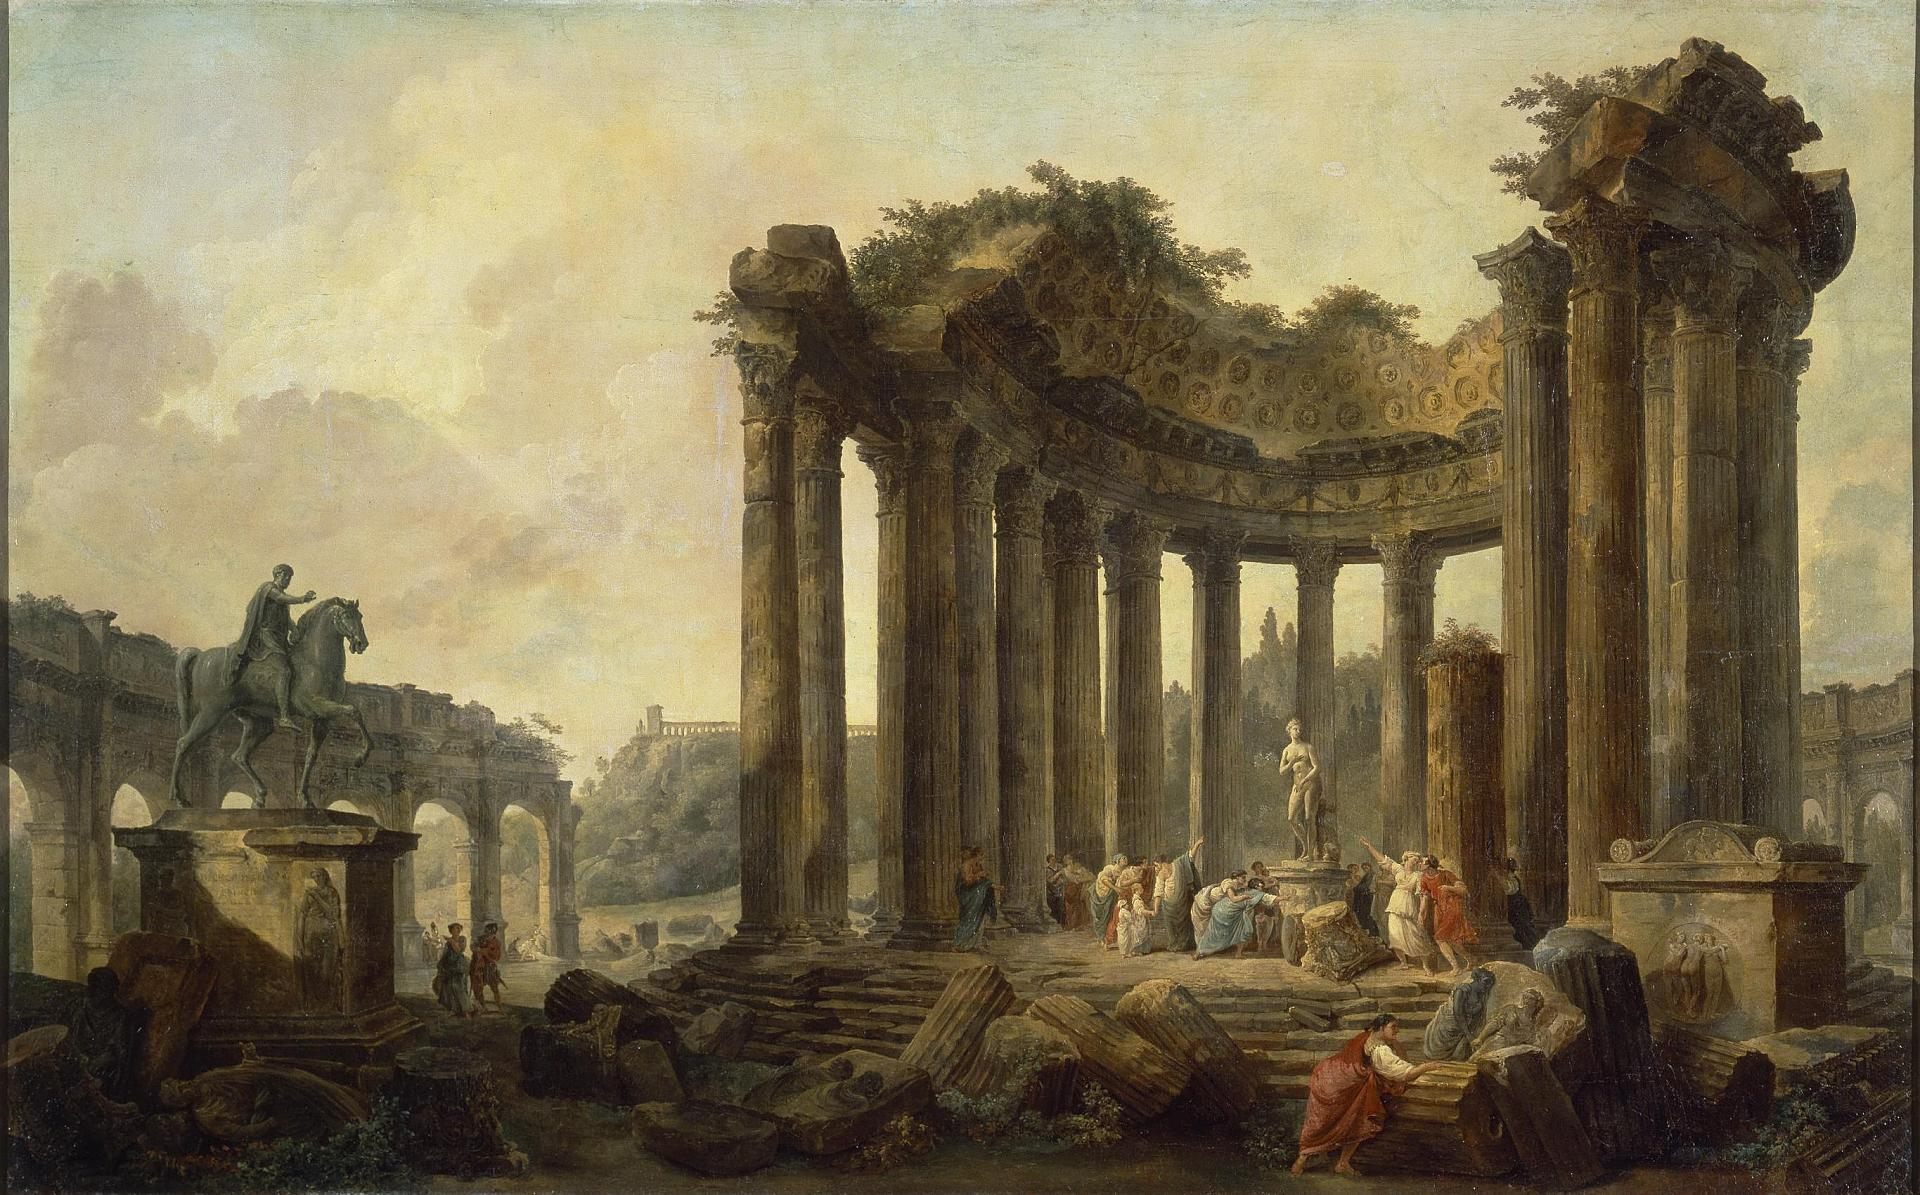 File:Hubert Robert   Landscape With The Ruins Of The Round Temple, With A